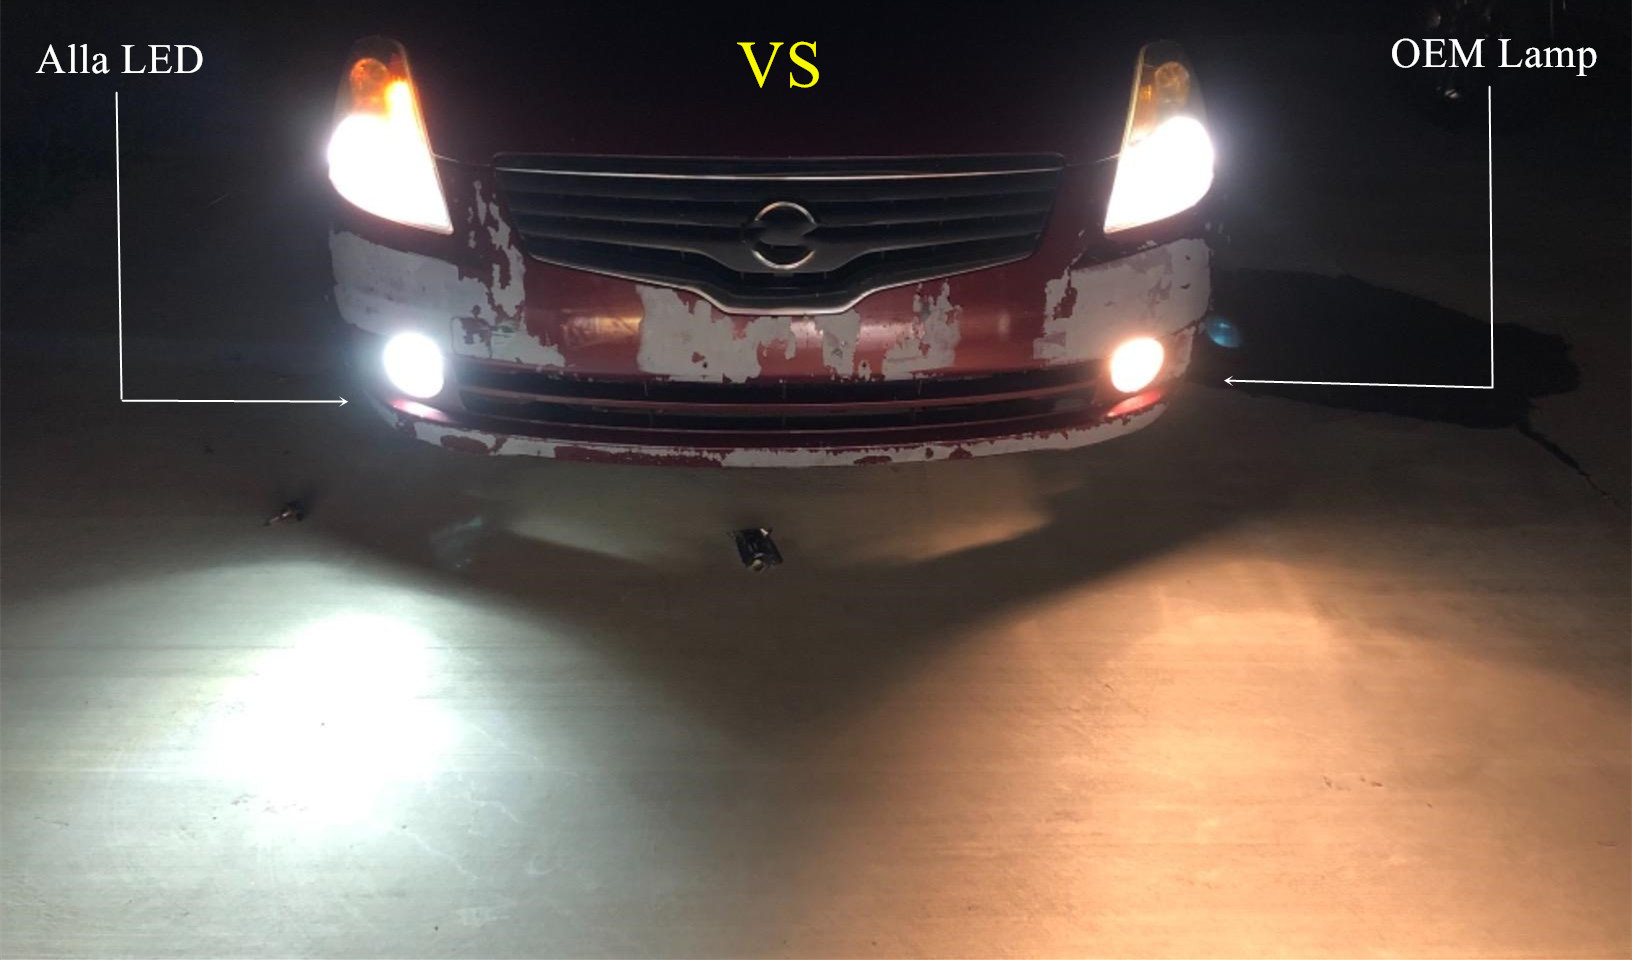 Super-bright-LED-HB4-9006-Bulbs-Fog-Lights-6000K-White-VS-Halogen-Lamp